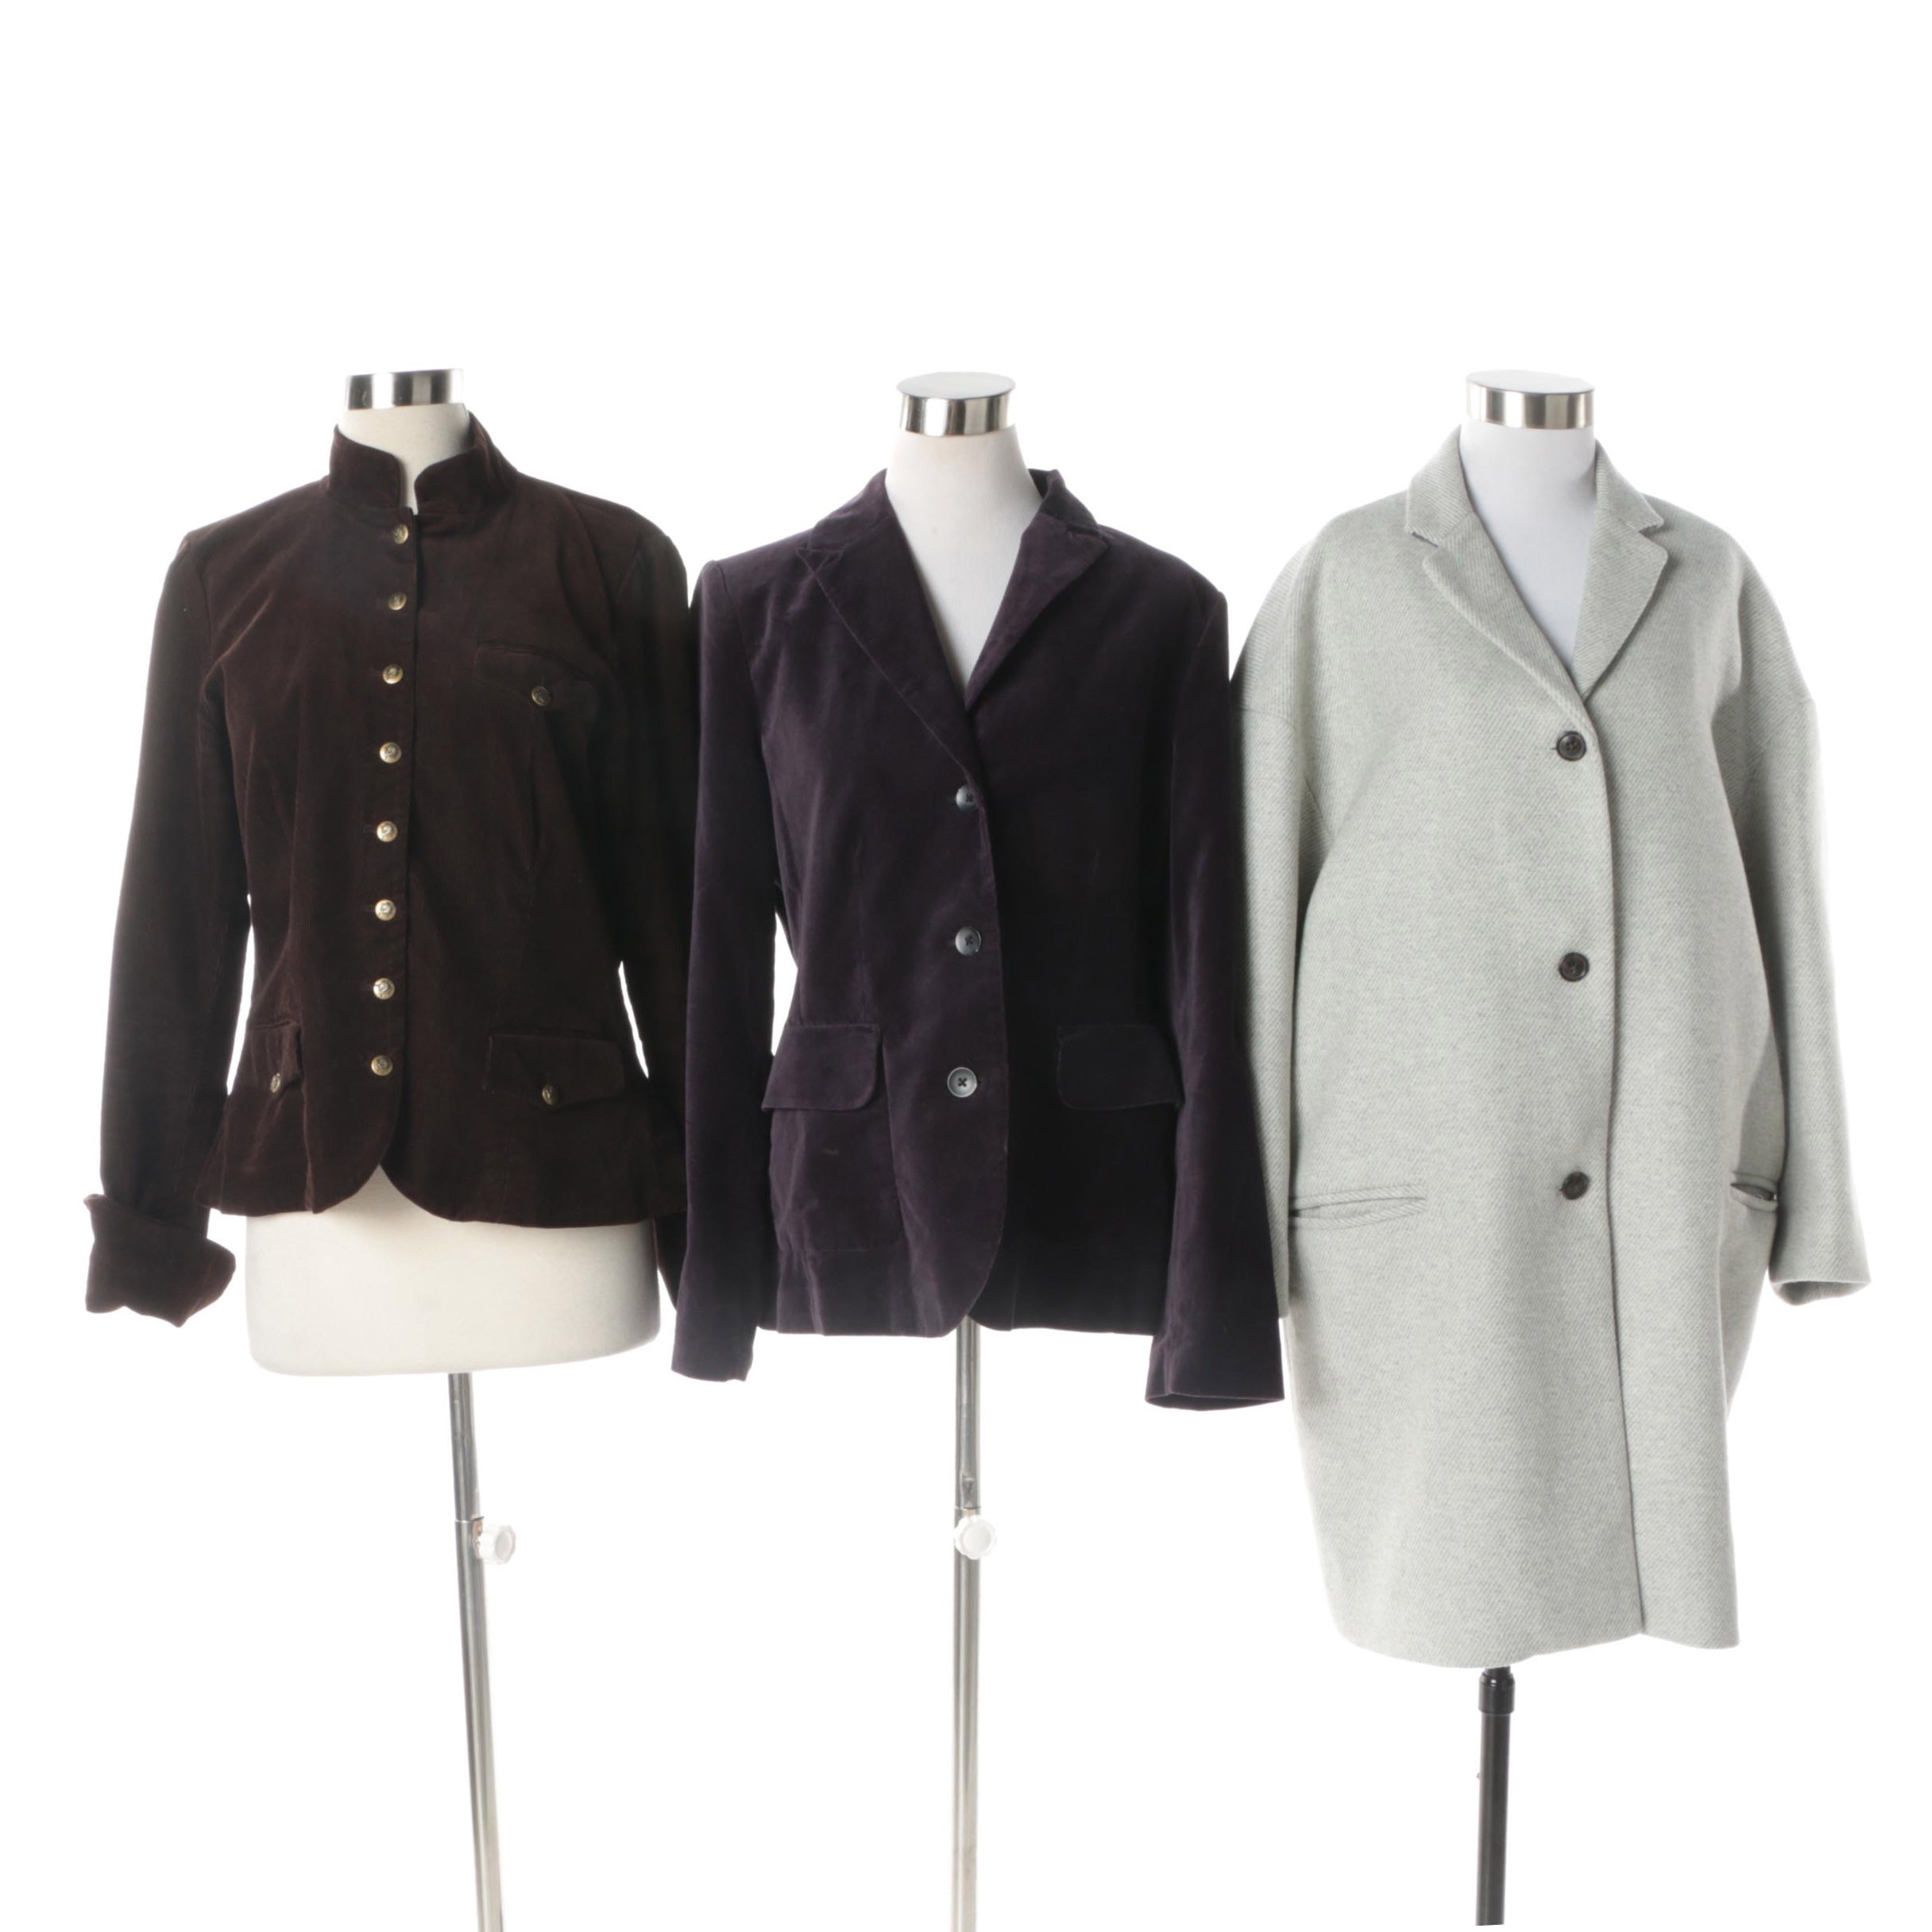 Women's Jackets and Coat Including Eddie Bauer and Gap